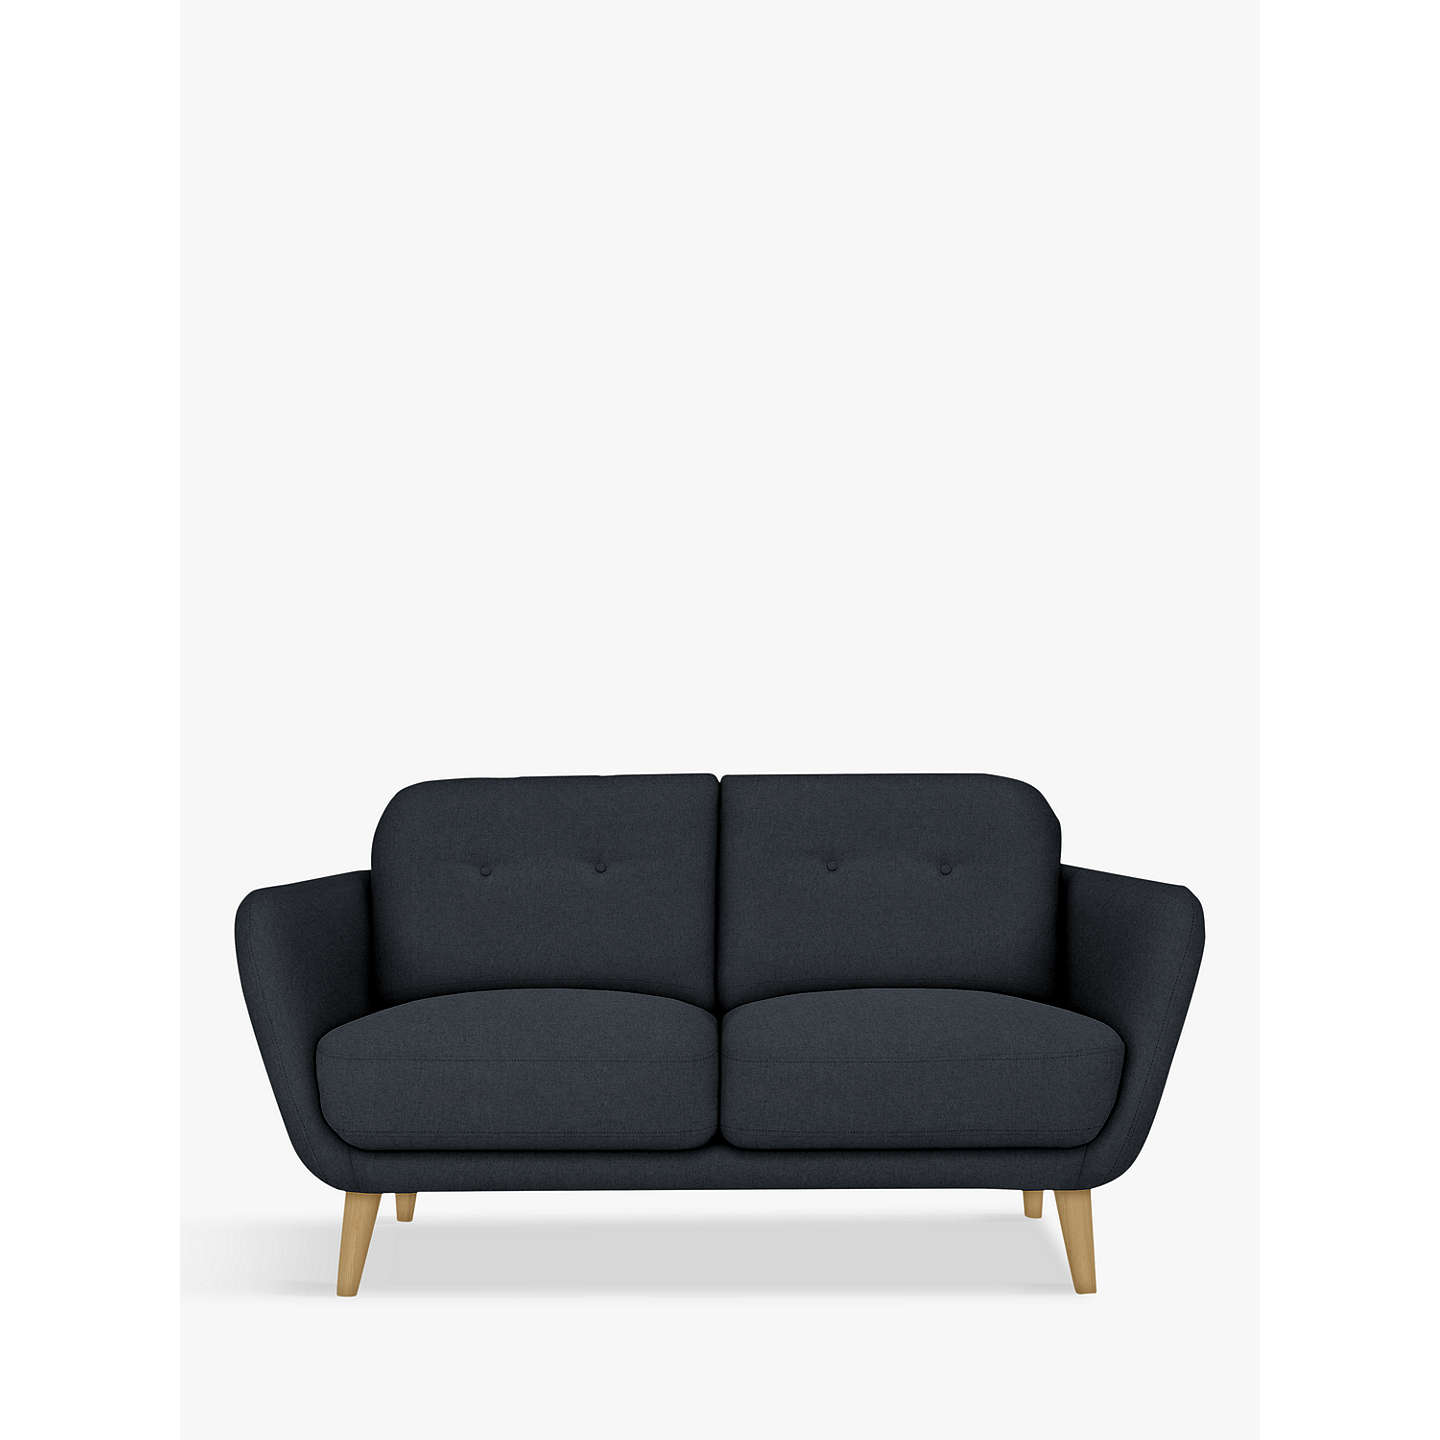 Buyhouse By John Lewis Arlo Small 2 Seater Sofa, Dylan